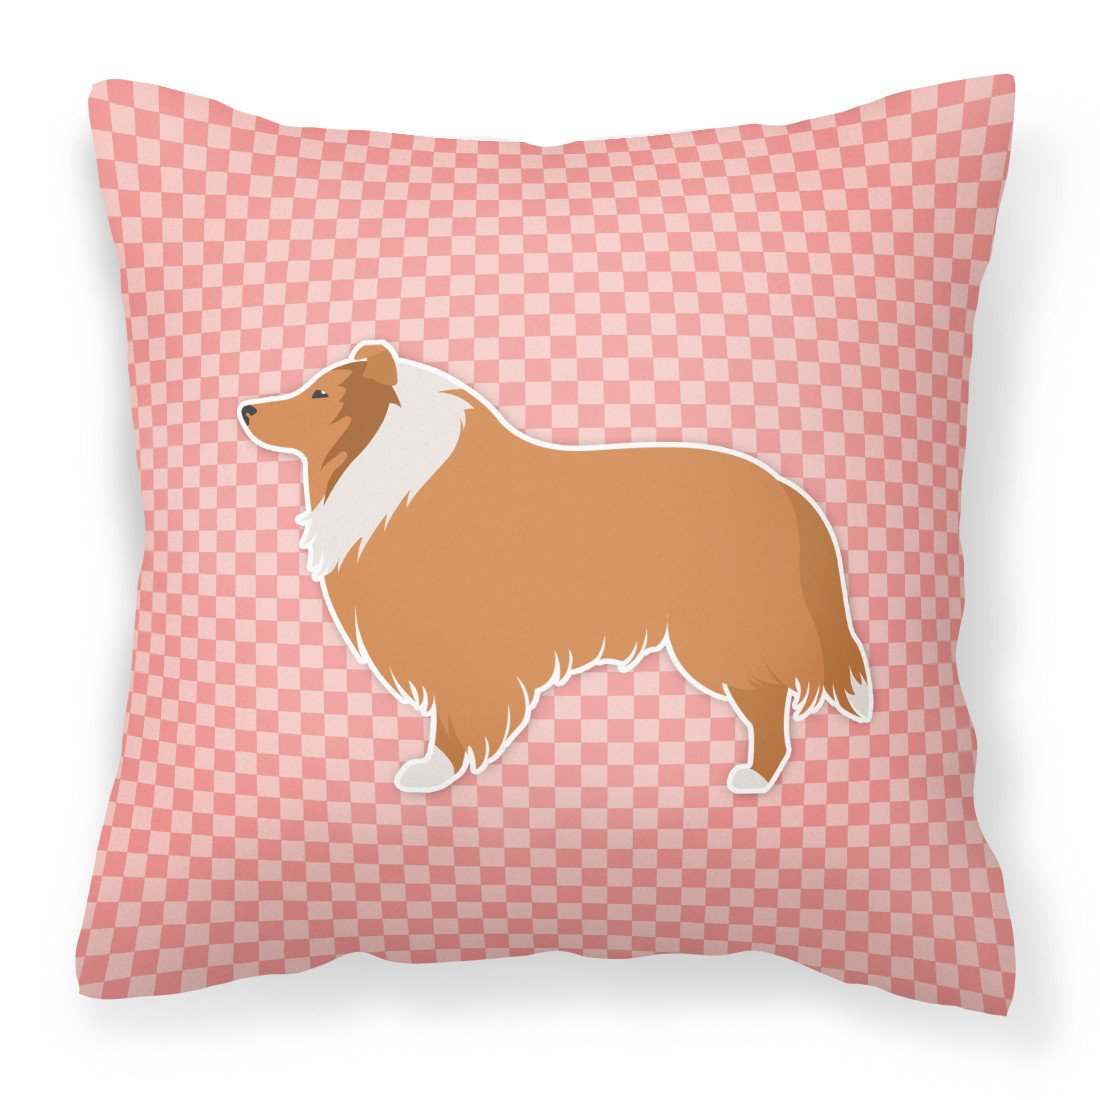 Collie Checkerboard Pink Fabric Decorative Pillow BB3616PW1818 by Caroline's Treasures